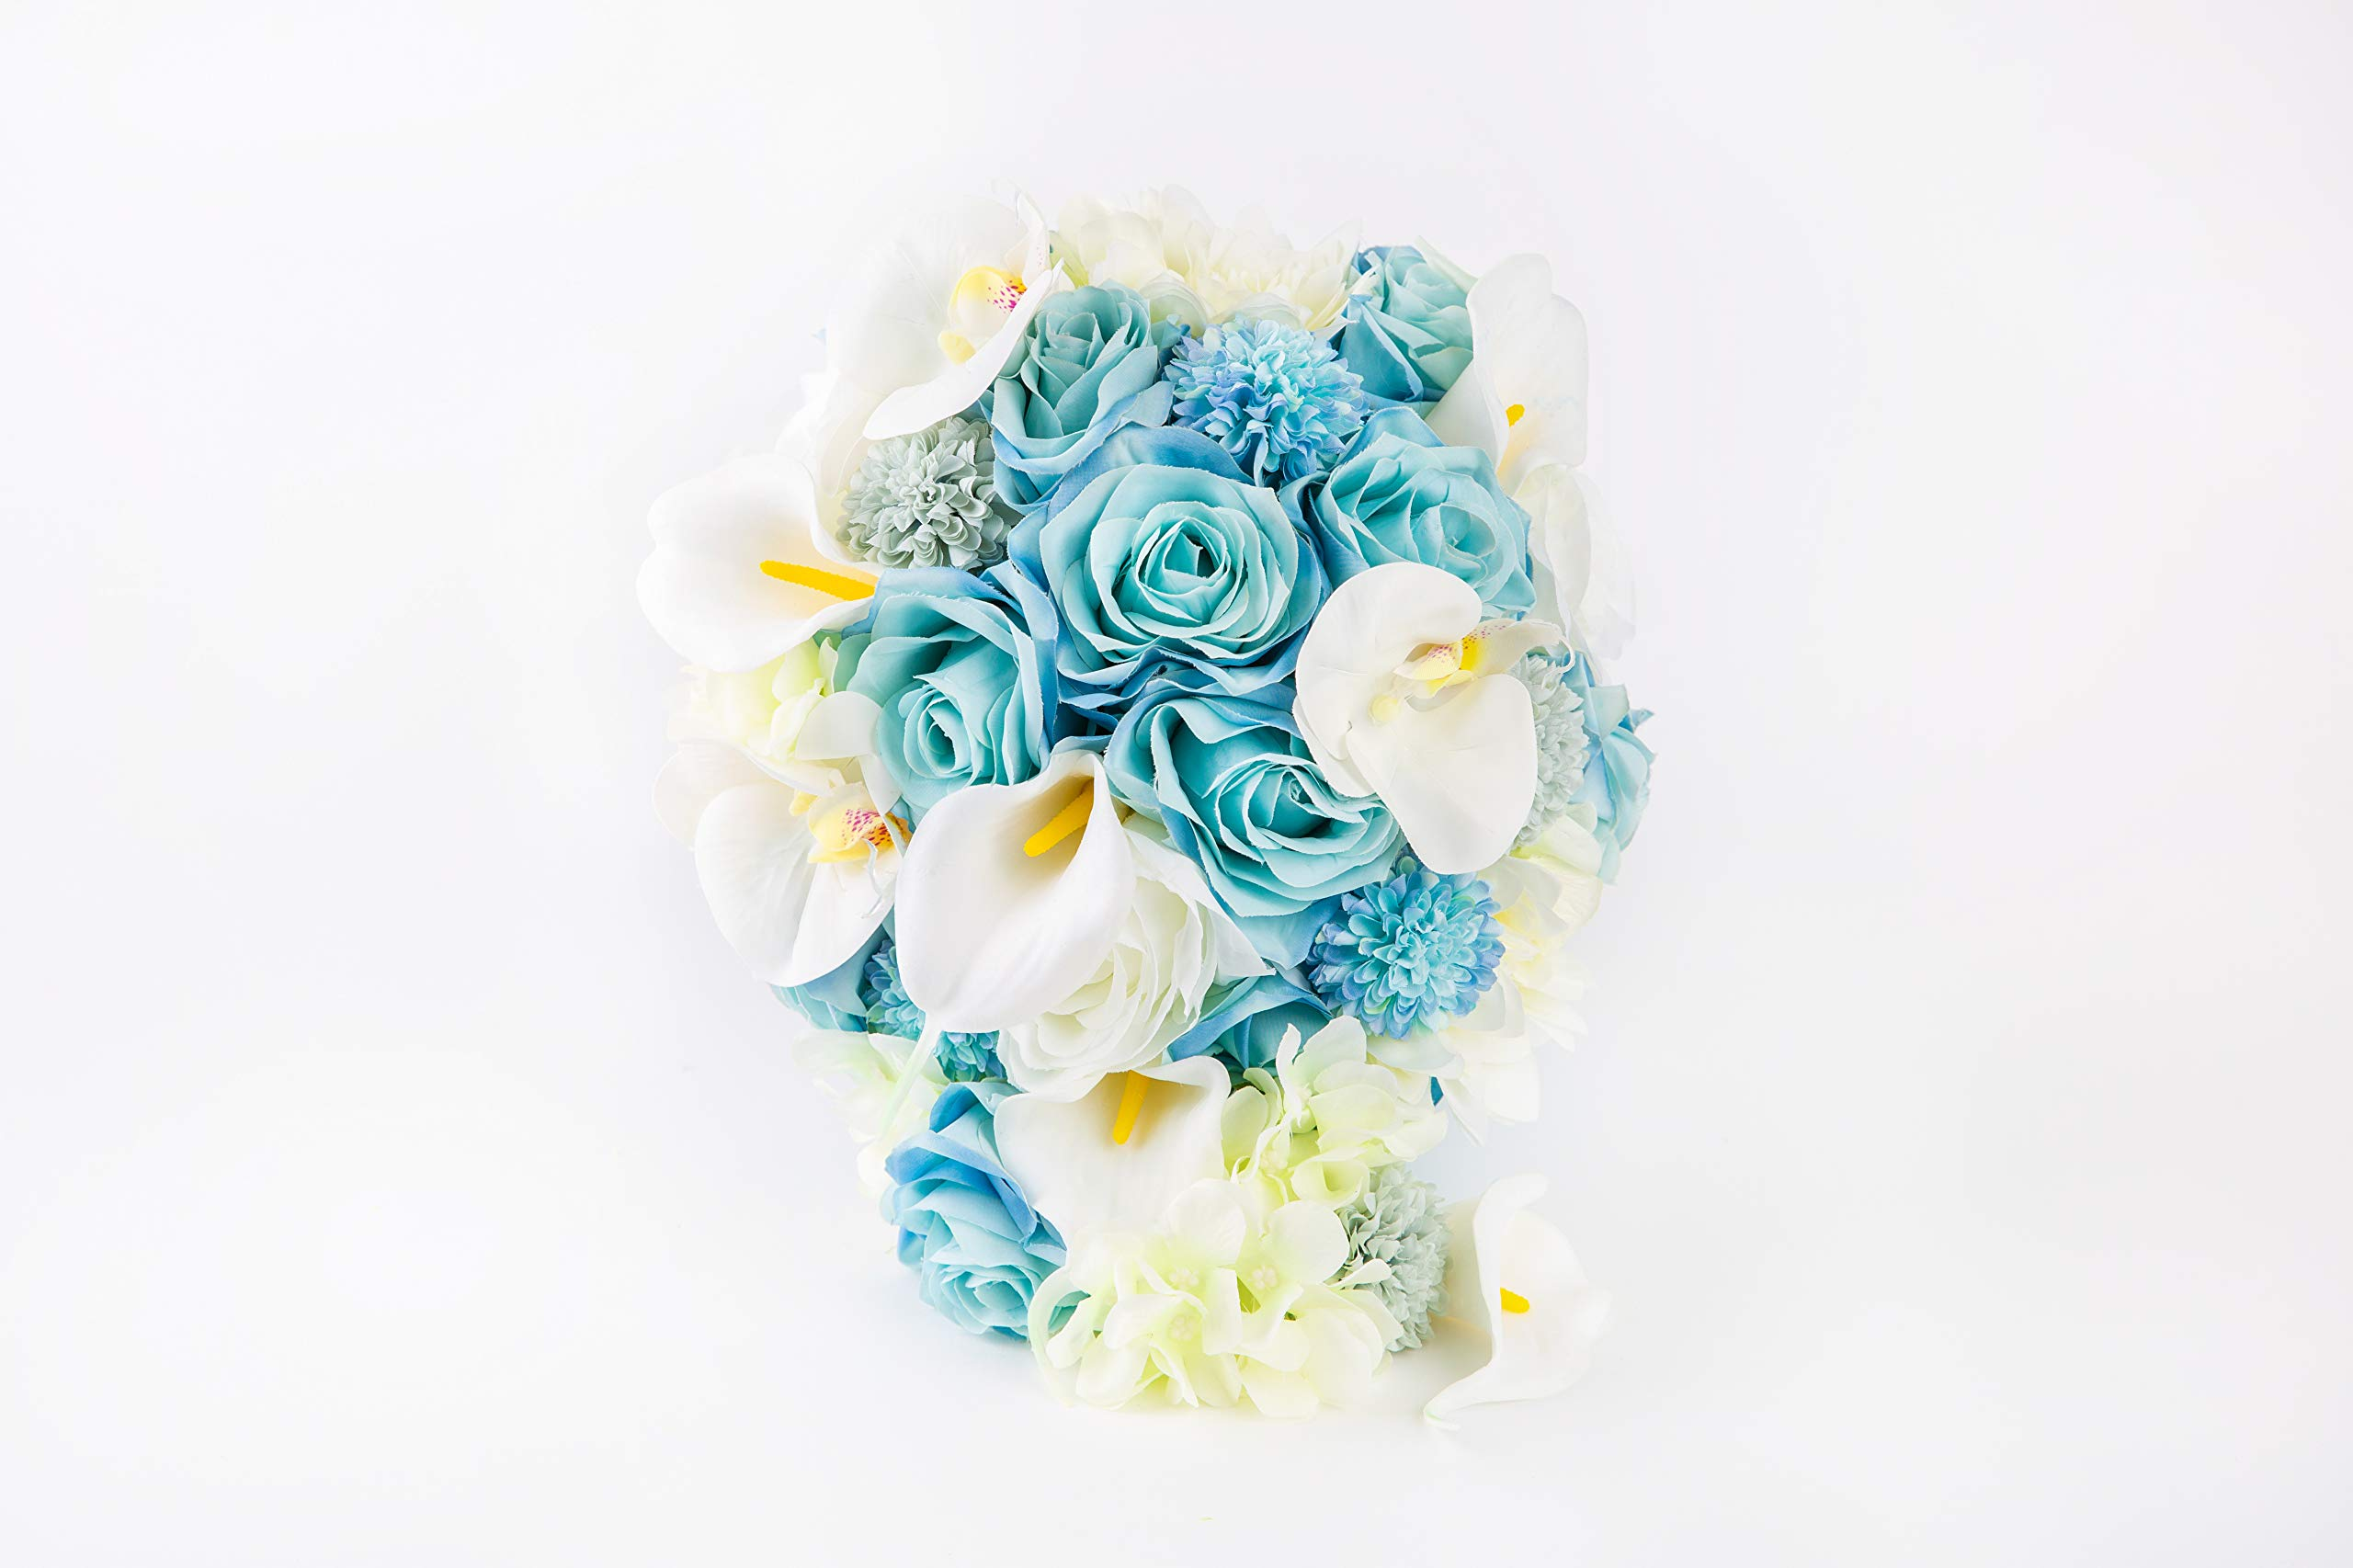 Abbie-Home-Light-Blue-Calla-Lily-White-Dahlia-Cascading-Bridal-Bouquets-Silk-Flowers-for-Beach-Wedding-with-Ribbon-and-Lace-Dcor-A-Cascading-Bouquet